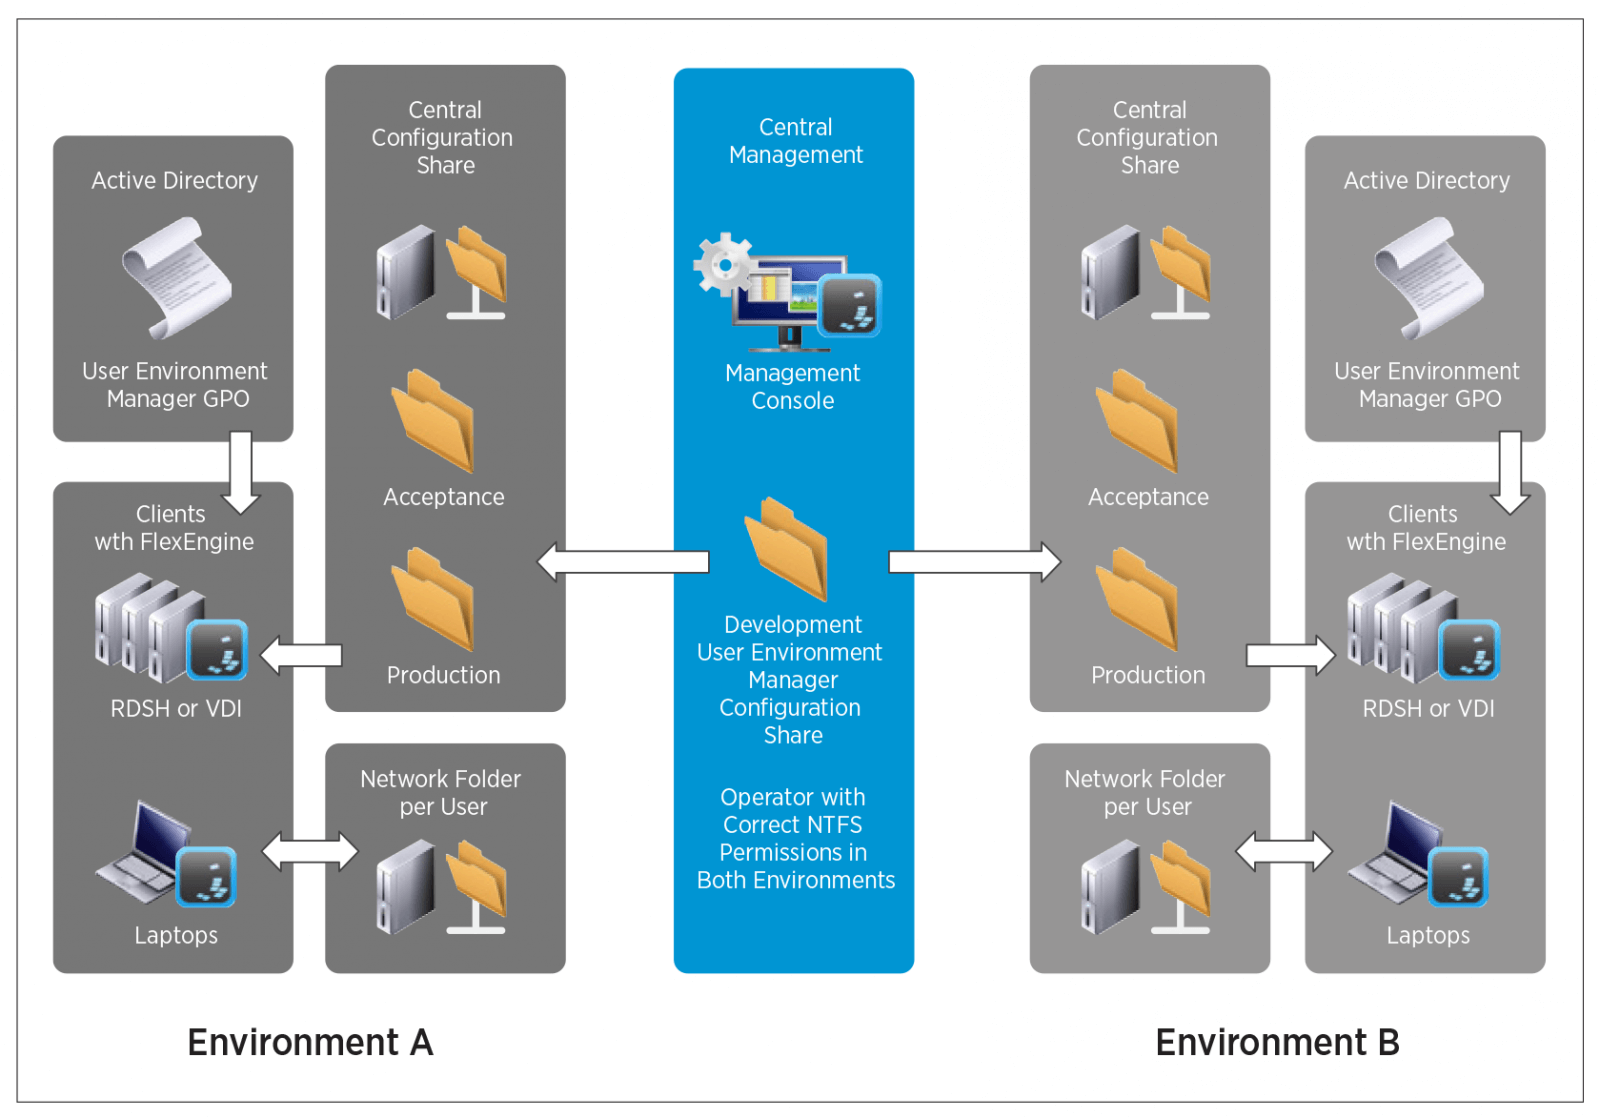 User Environment Manager Deployment Considerations Guide